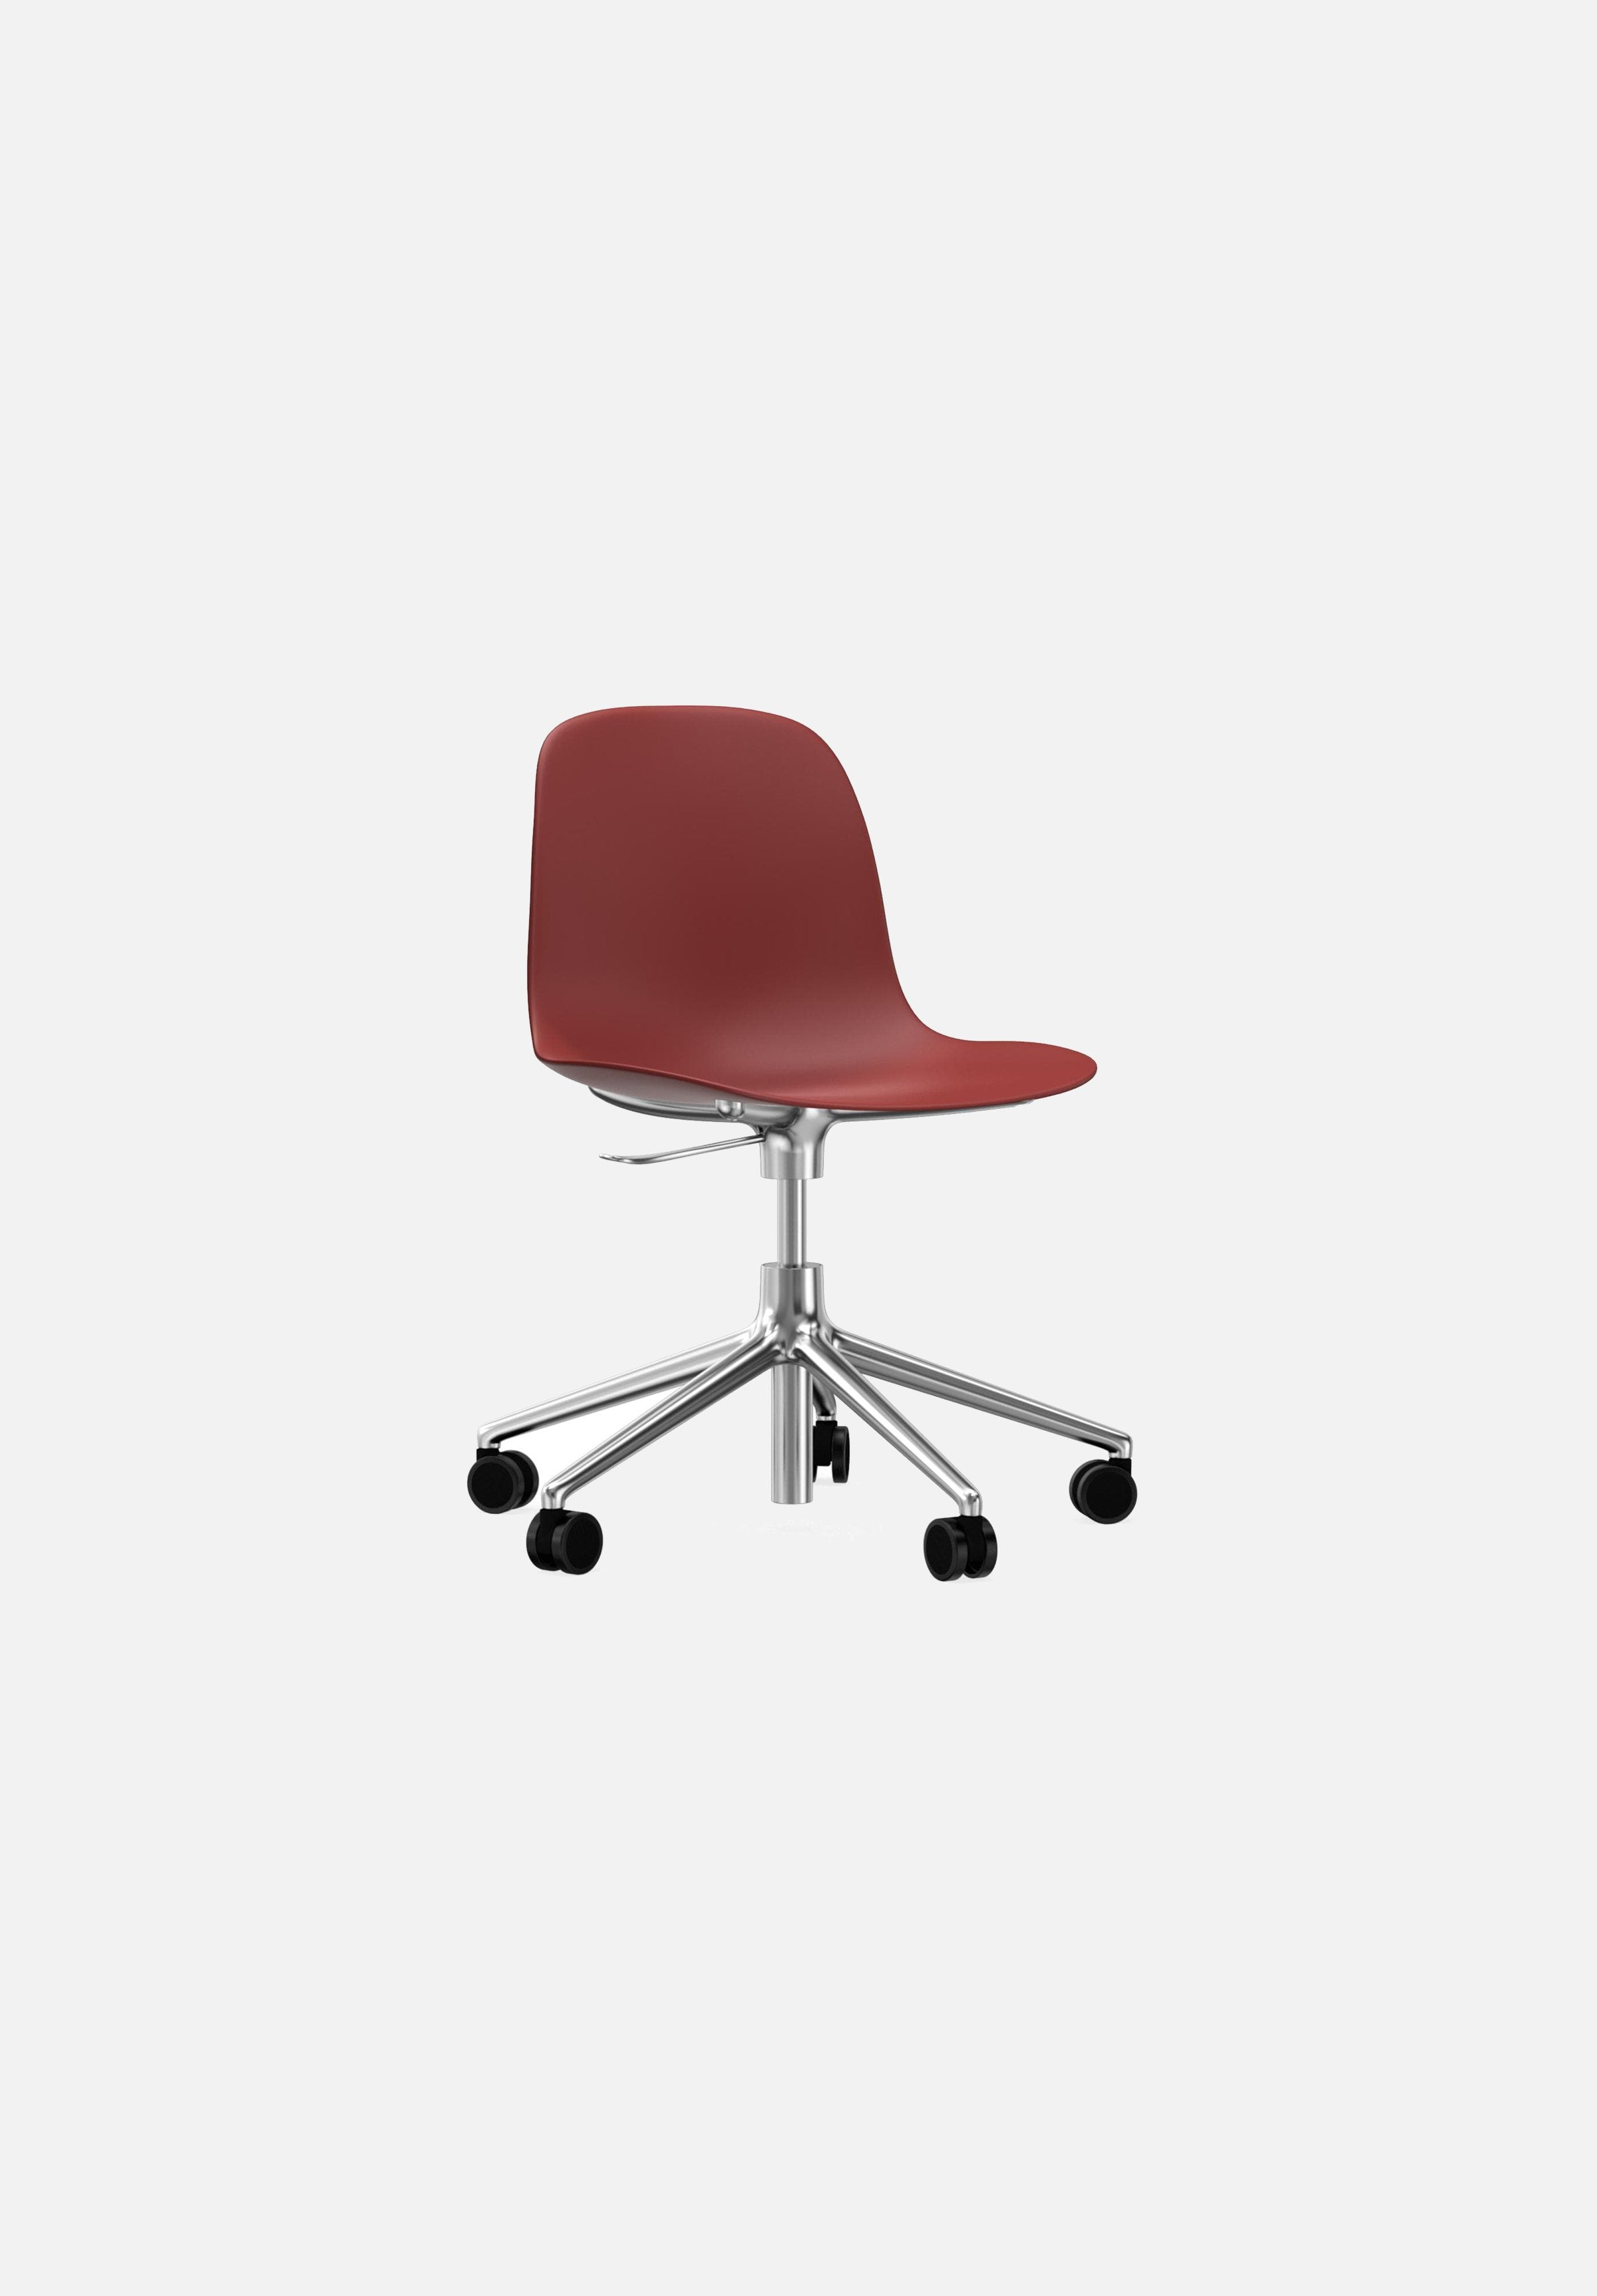 Form Chair — Swivel Gaslift-Simon Legald-Normann Copenhagen-Red-Polished Aluminum-Average